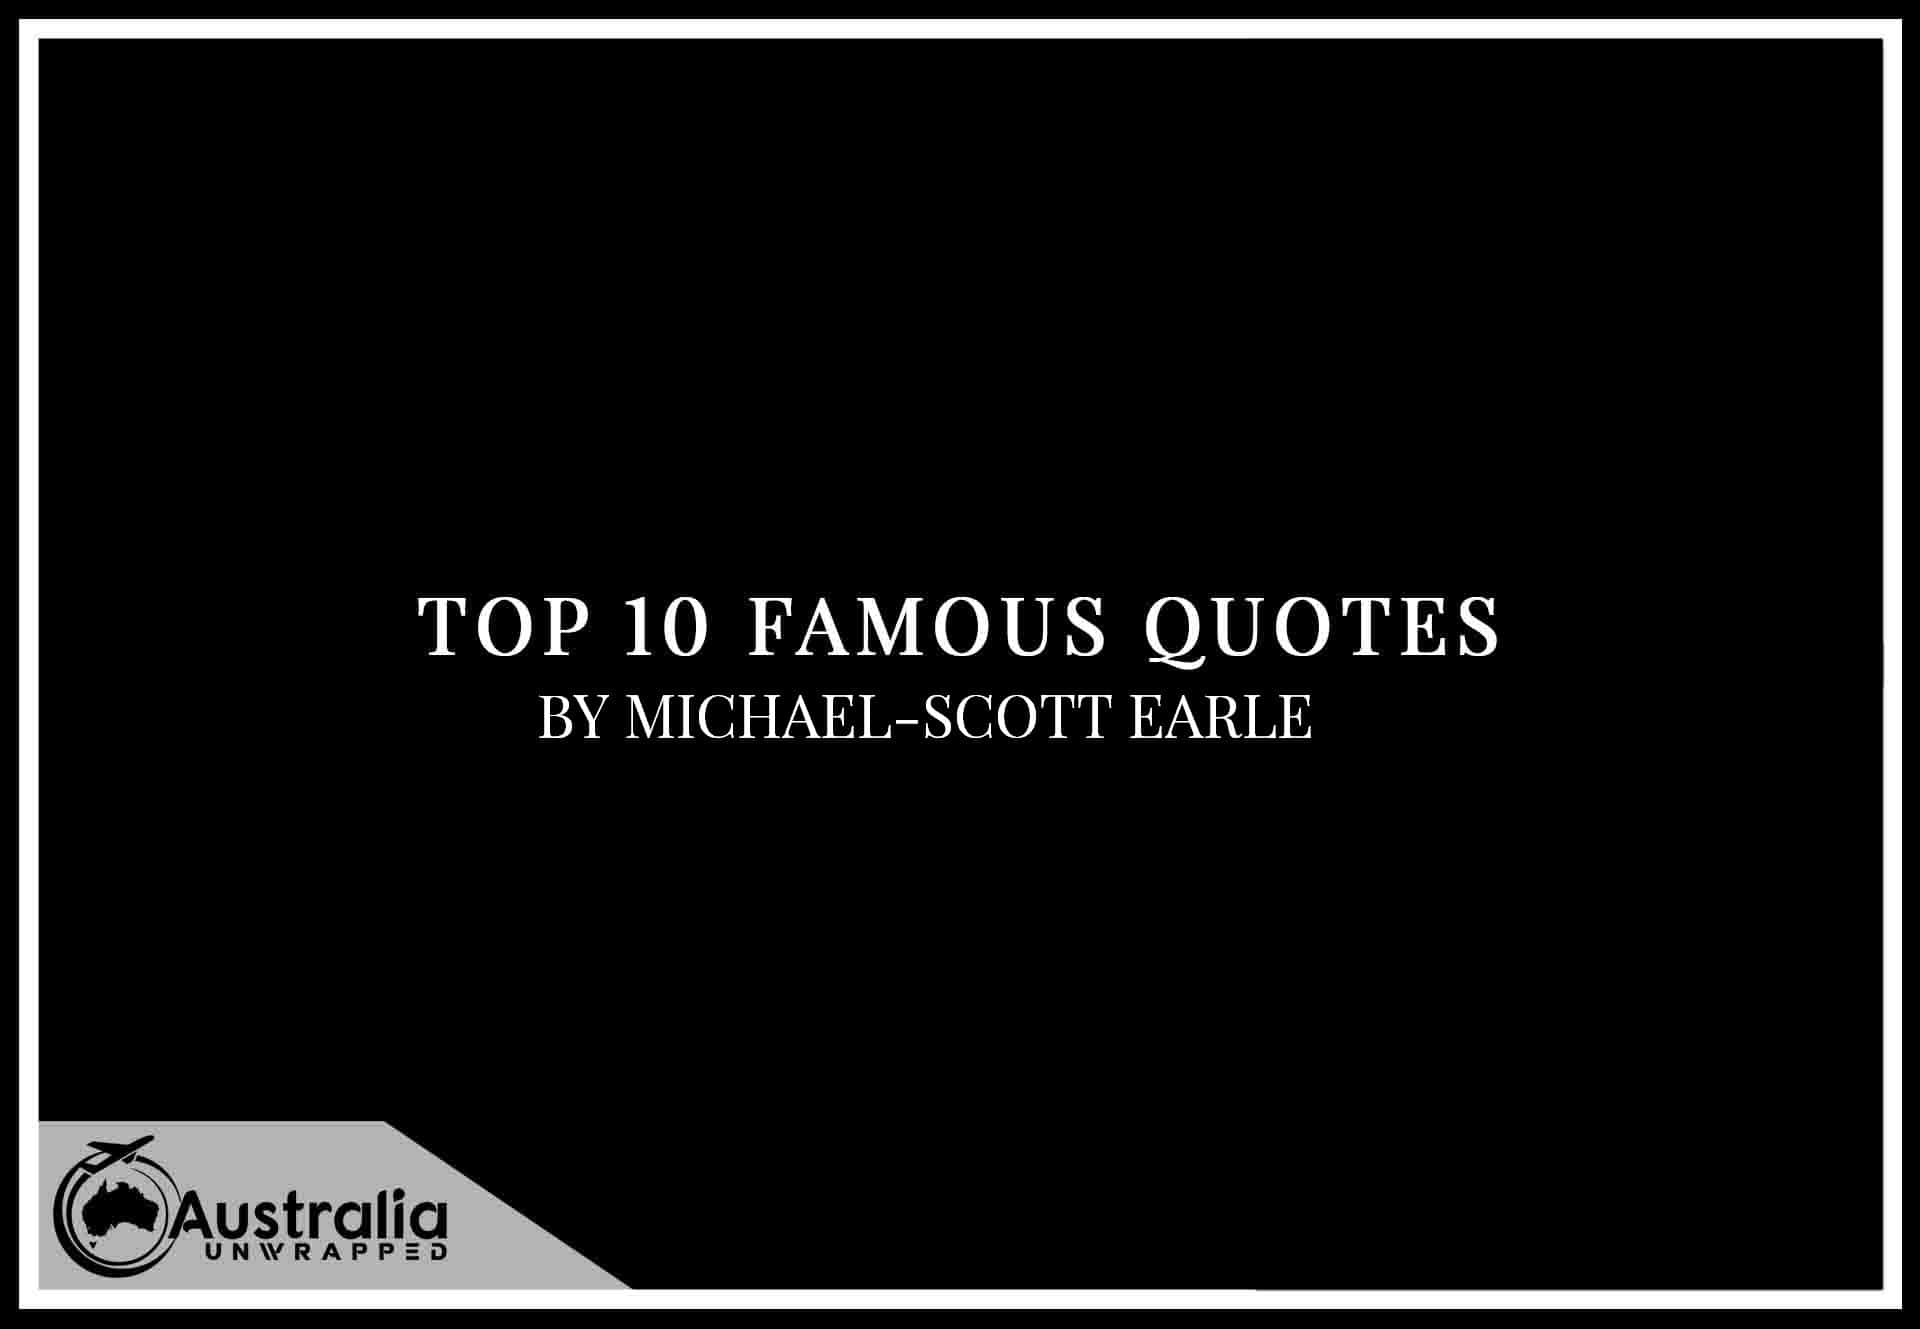 Top 10 Famous Quotes by Author Michael-Scott Earle